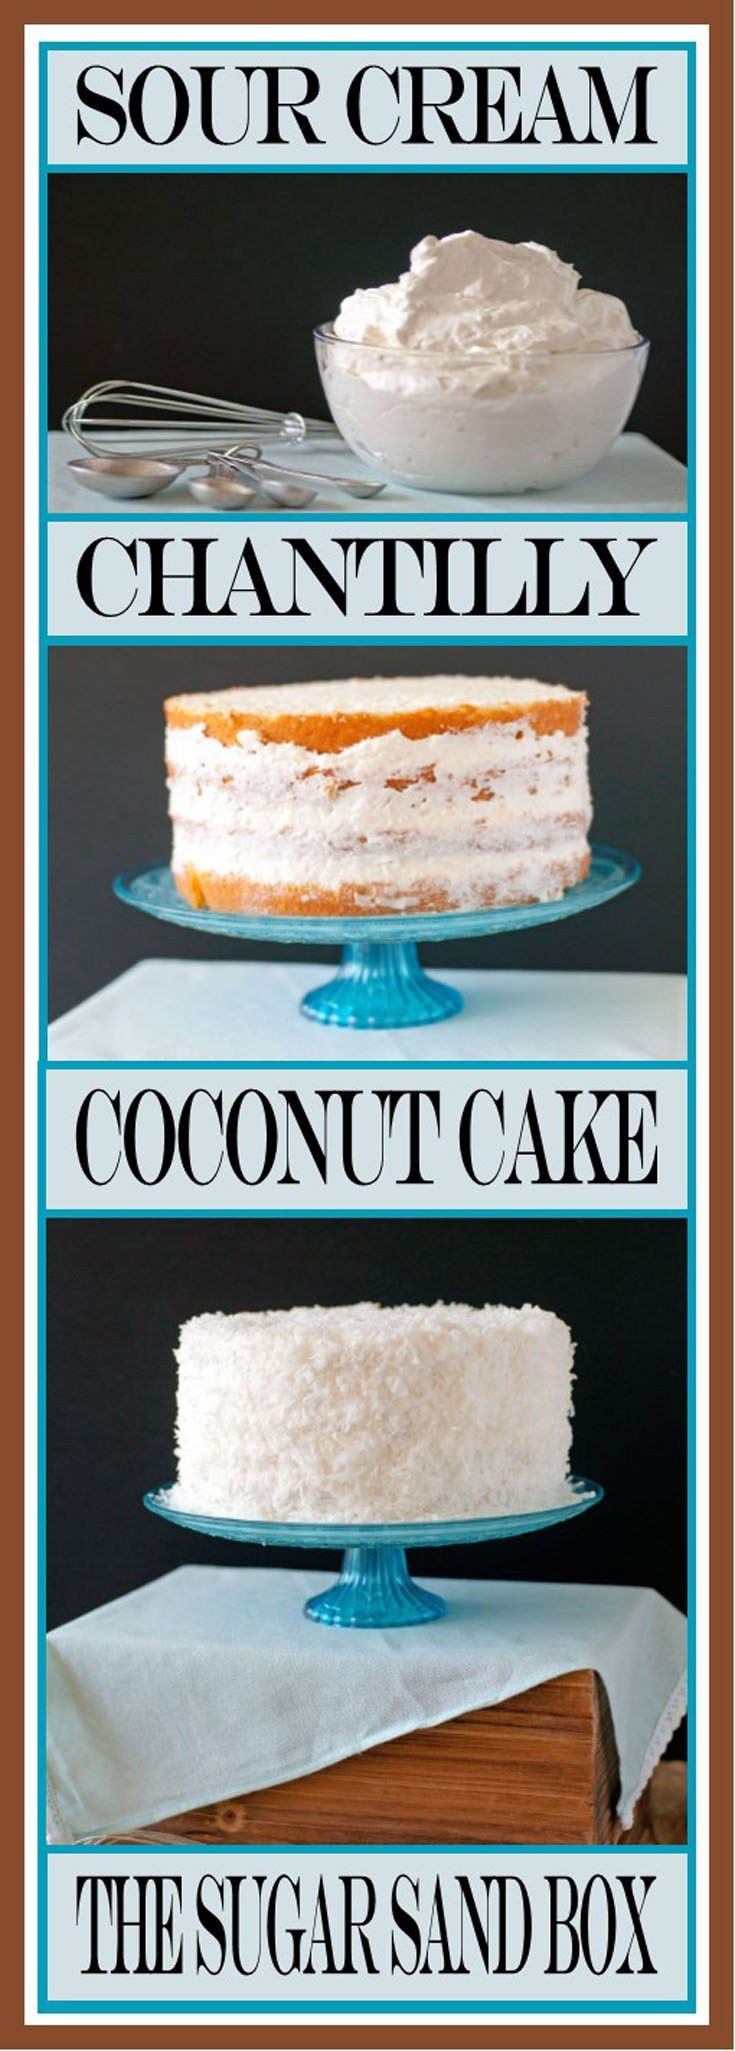 Coconut Cake With Sour Cream Whipped Icing Coconut Cake Recipe Sour Cream Coconut Cake Coconut Cake Recipe With Sour Cream